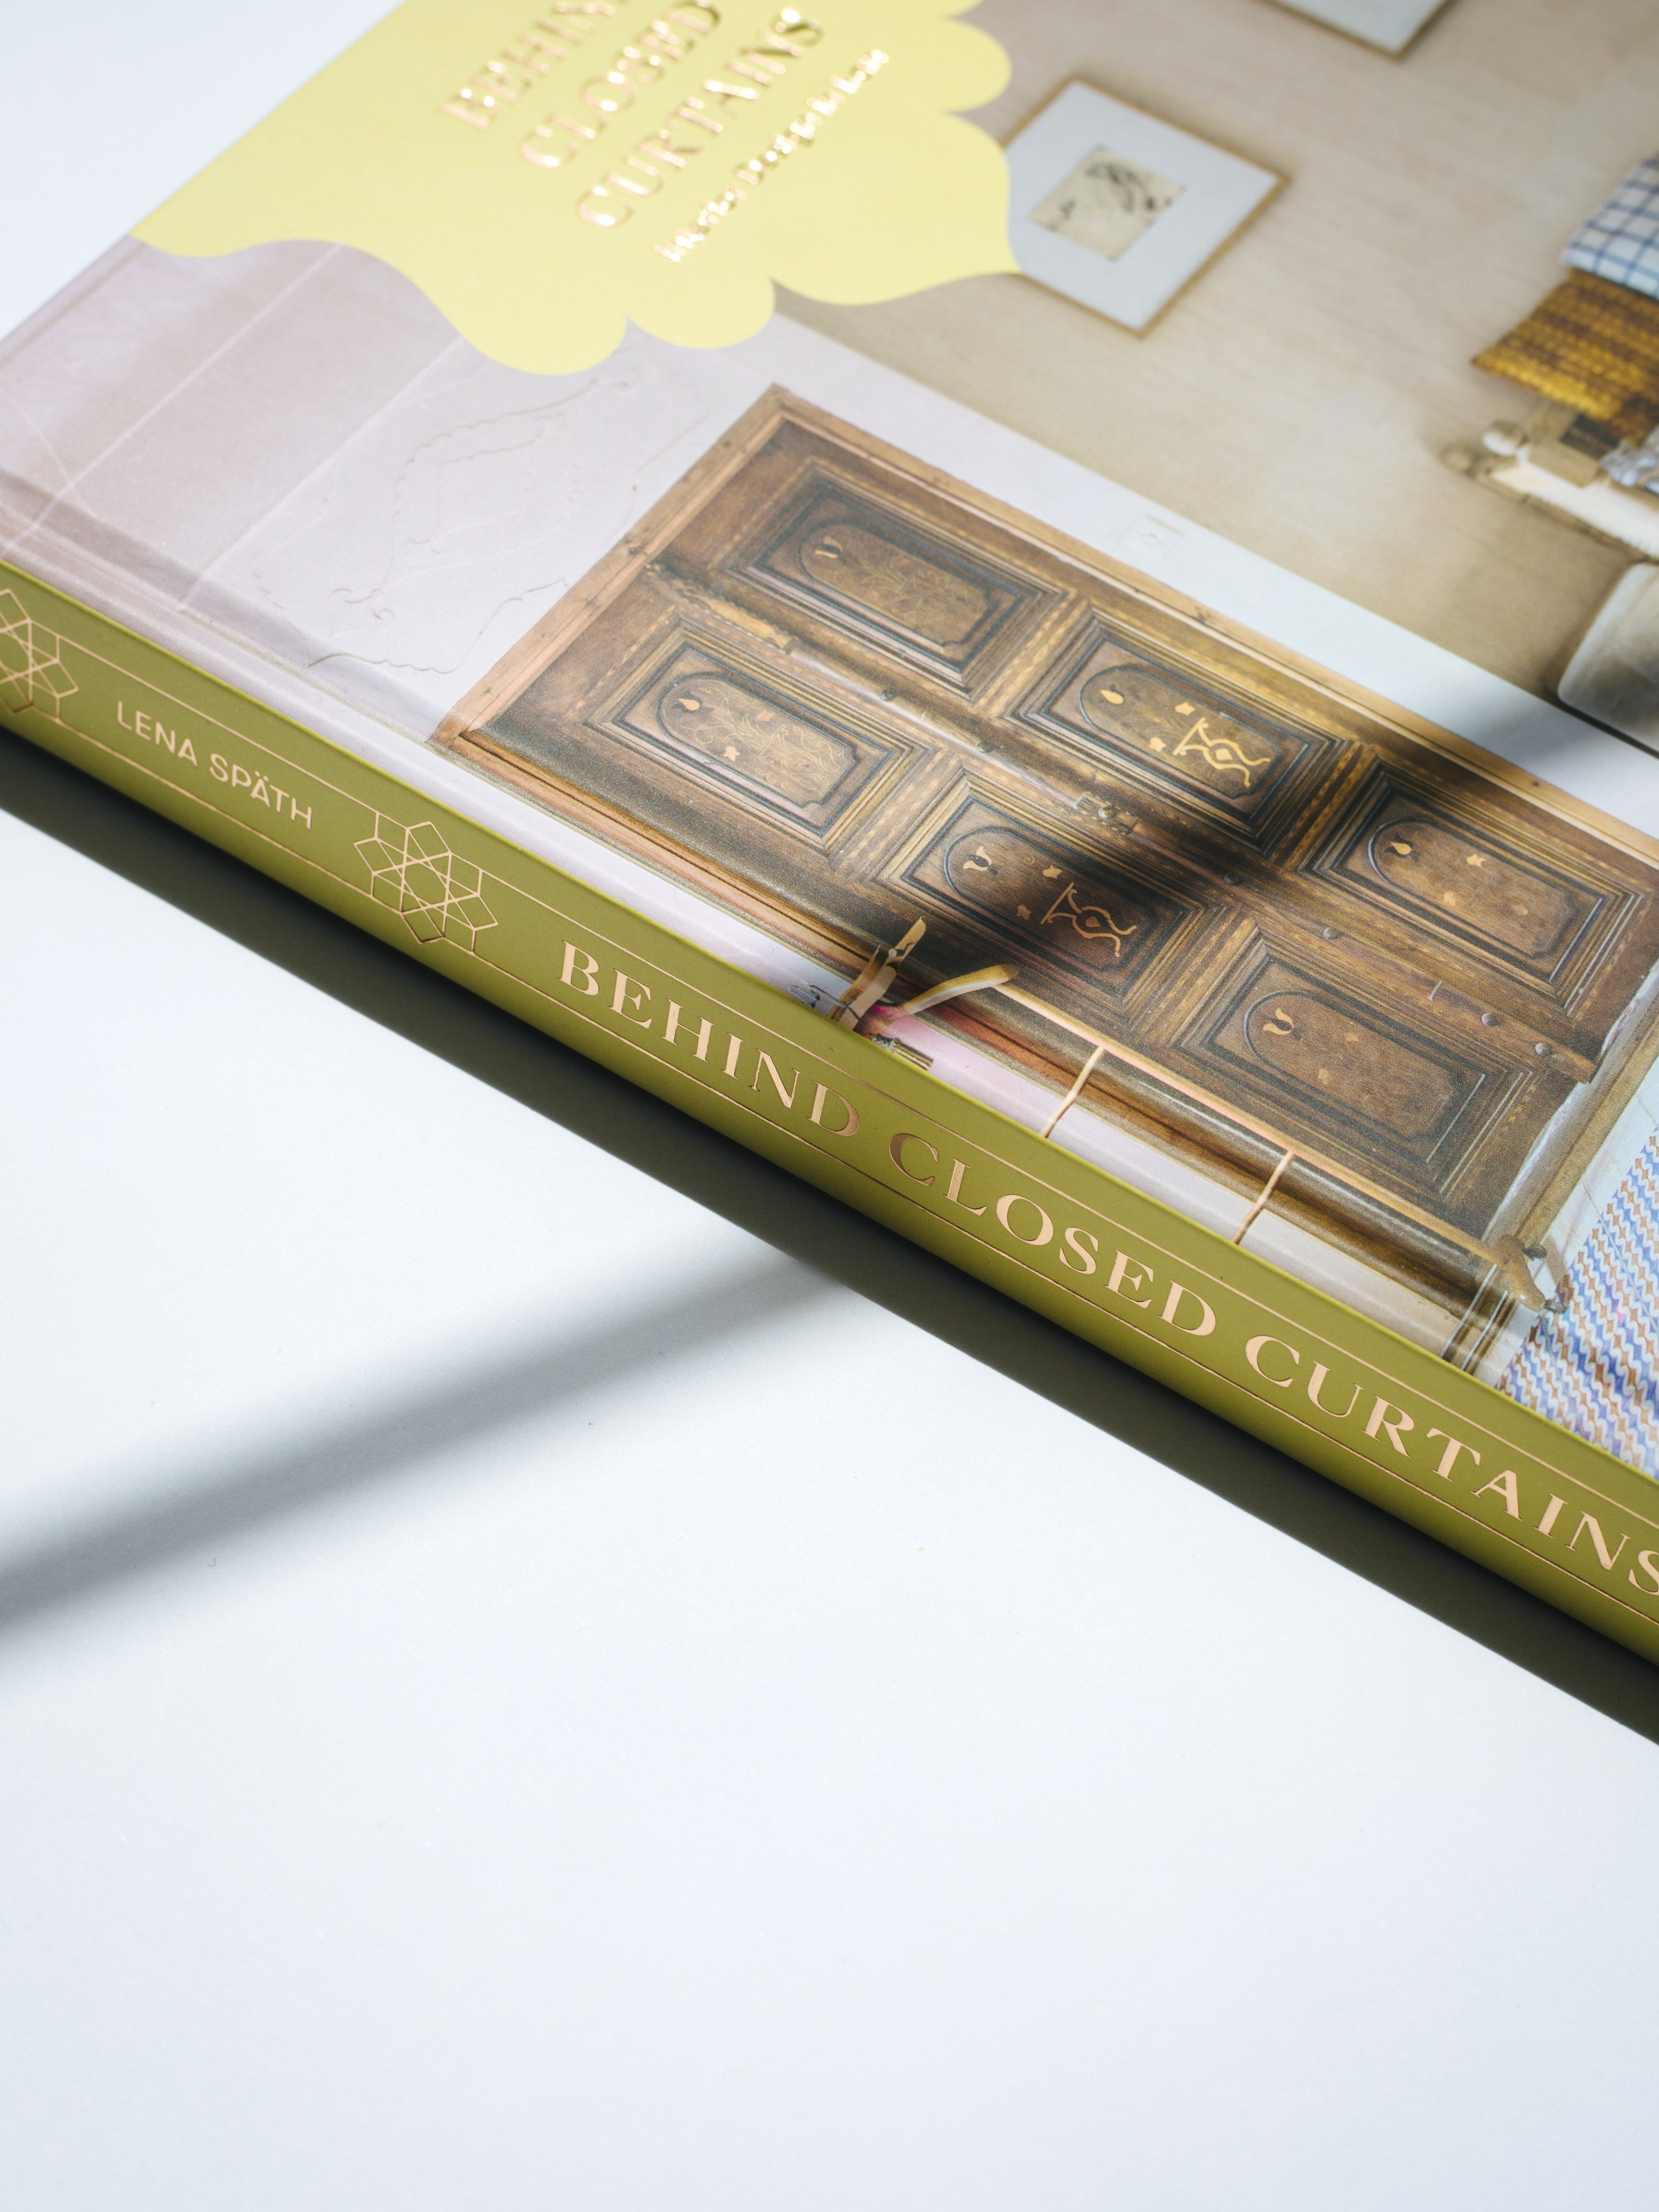 Book signing for Behind Closed Curtains: Interior Design in Iran